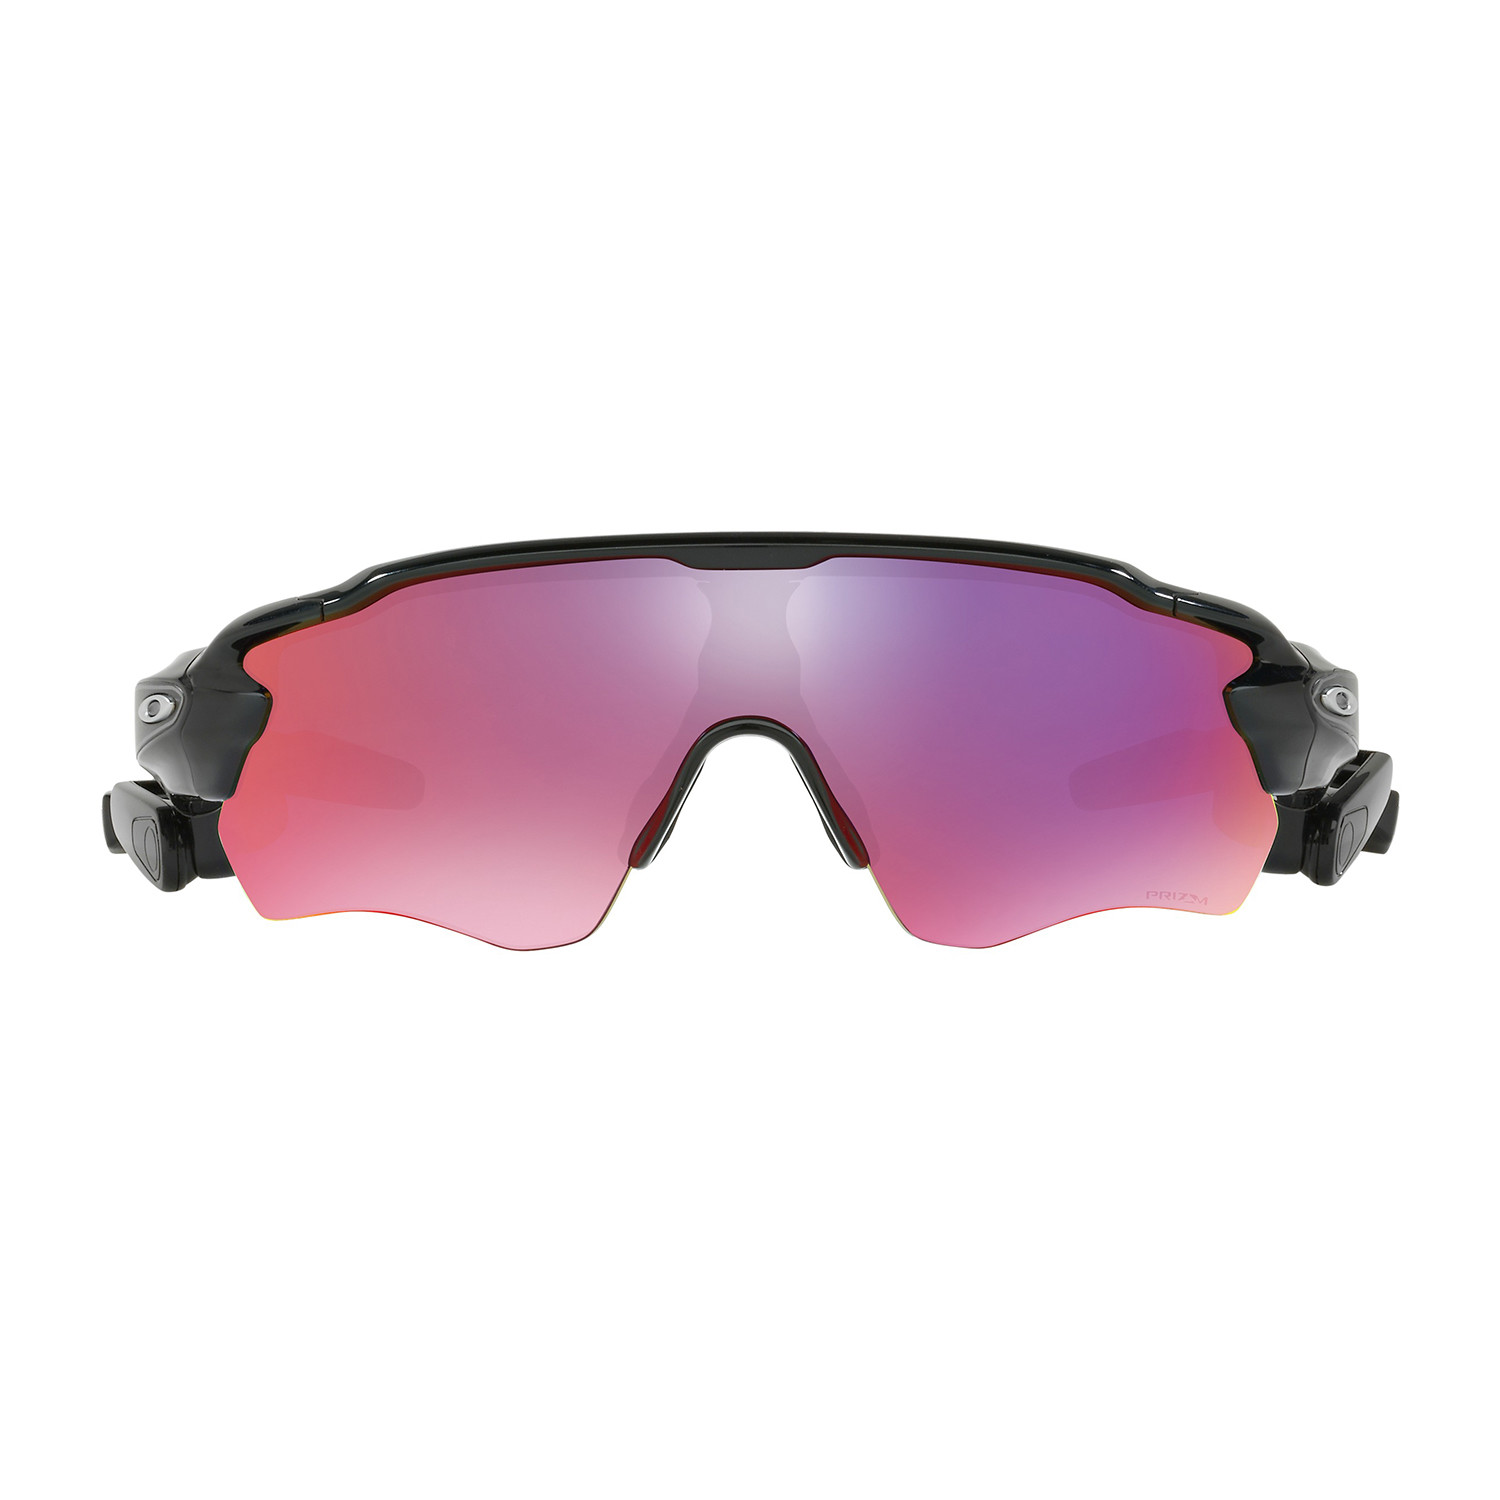 f6c54a3b7883 Radar Pace // Voice-Activated Coaching Sunglasses - Oakley Radar ...